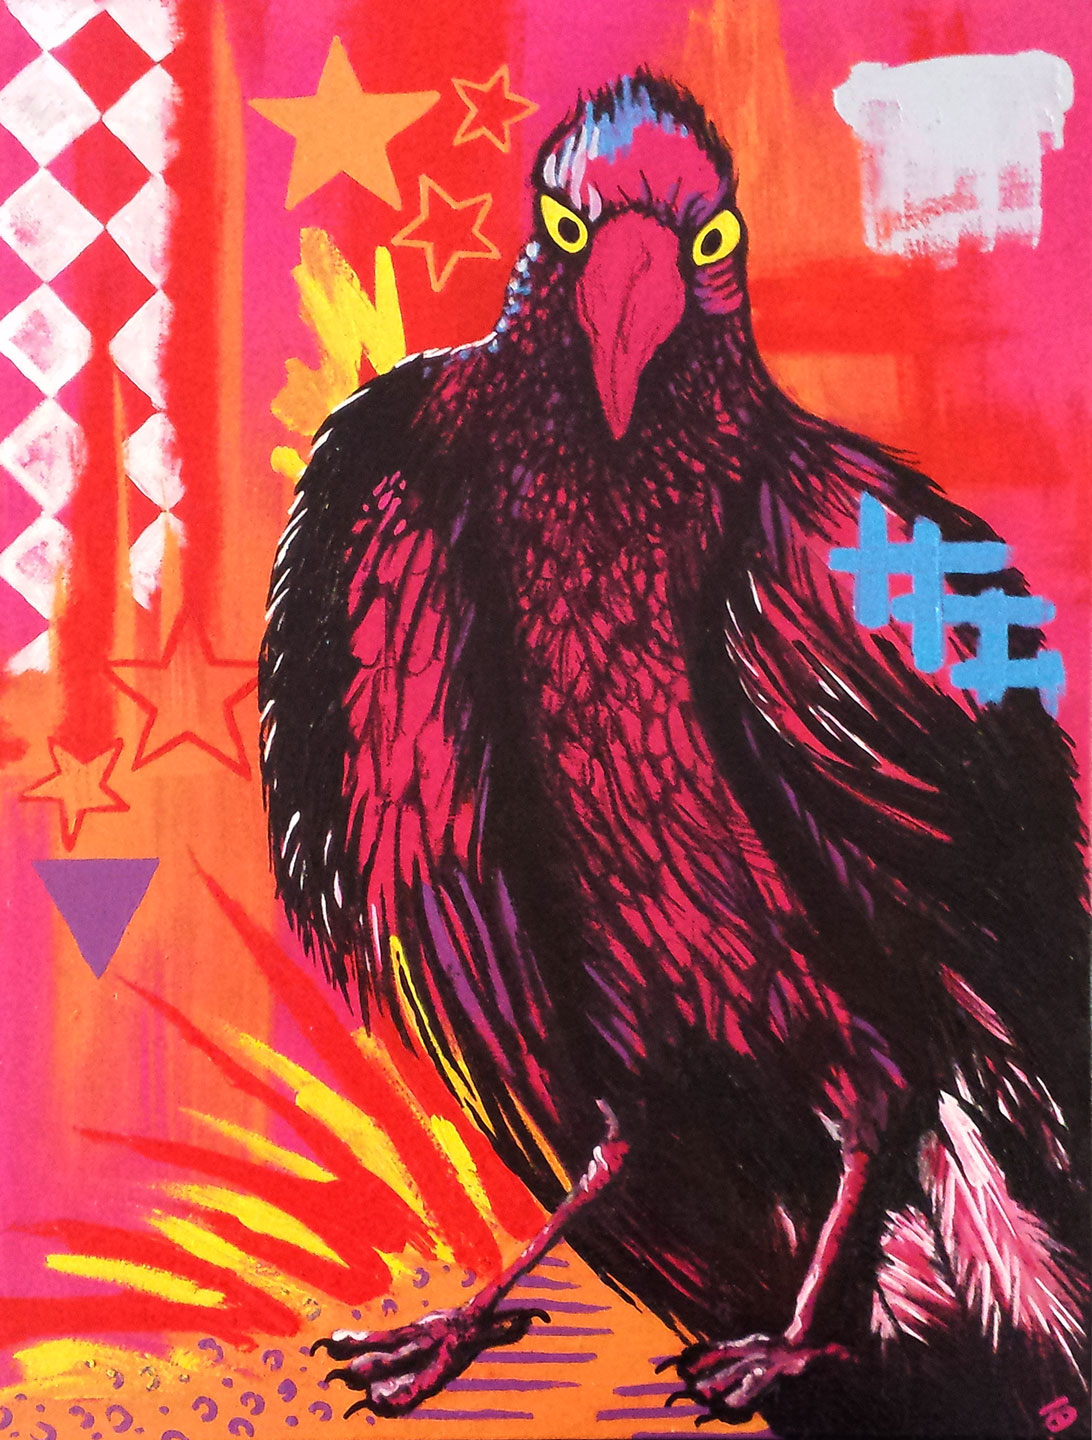 MAXIMUS BY SUNSHINE COAST DYNAMIC ARTIST DARREN TREBILCO FROM THE SOLITUDE ART GALLERY